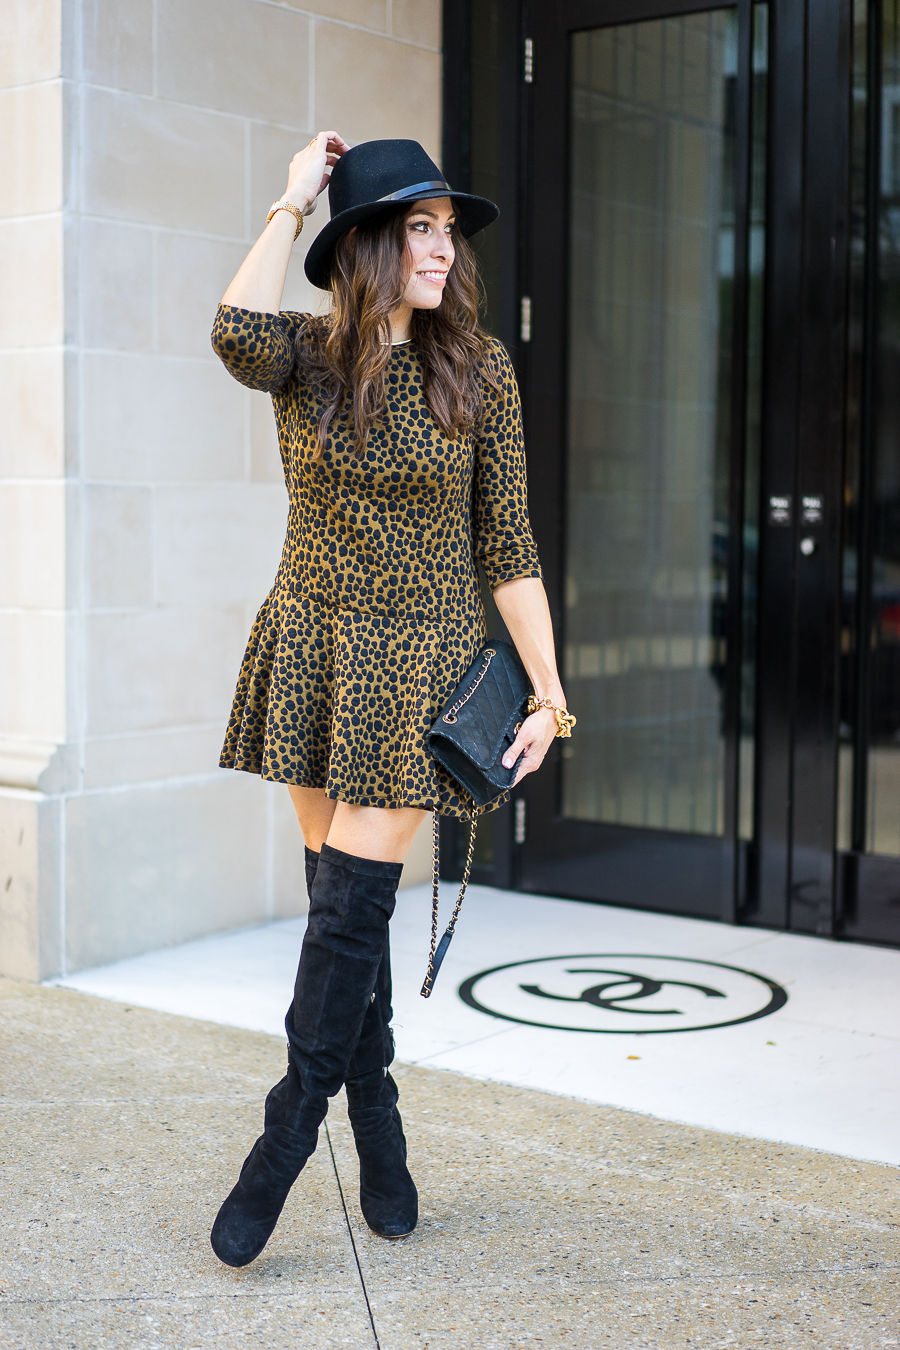 leopard print dress and boots